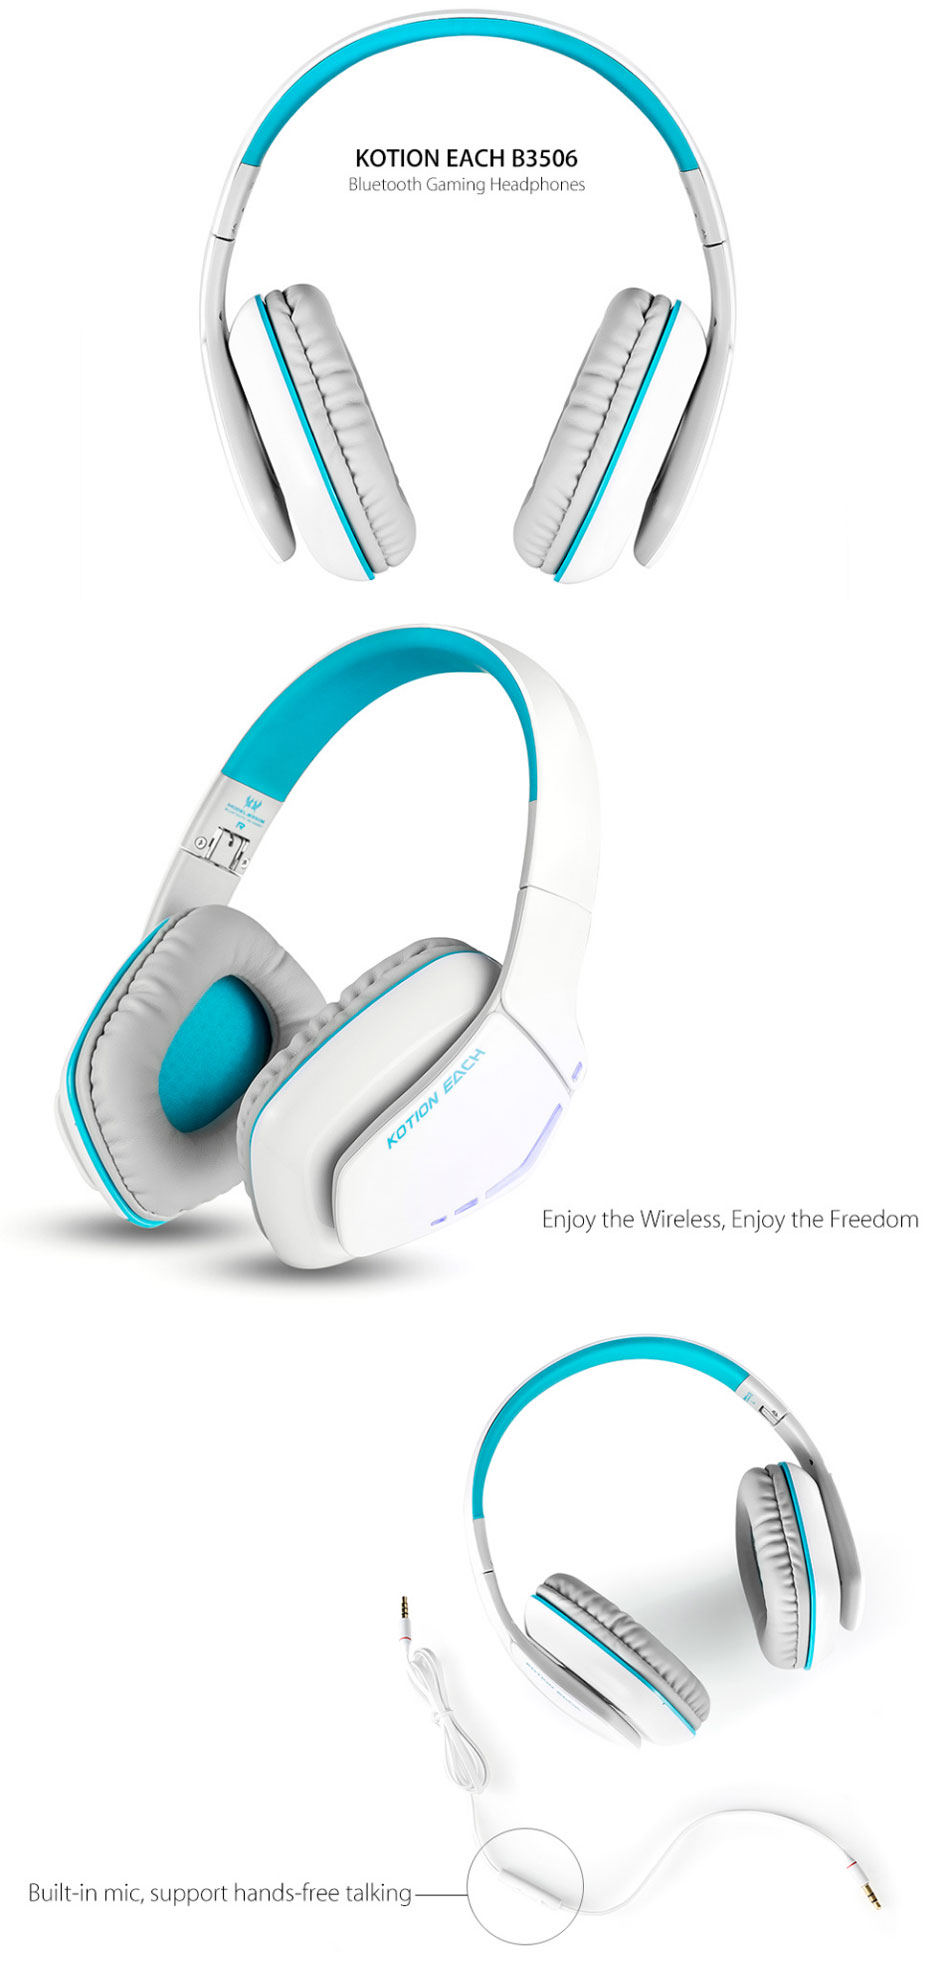 KOTION EACH B3506 Wireless Bluetooth Headset Foldable Gaming Cuffie Stereo  Headphone with Mic 690f2a6a90b3